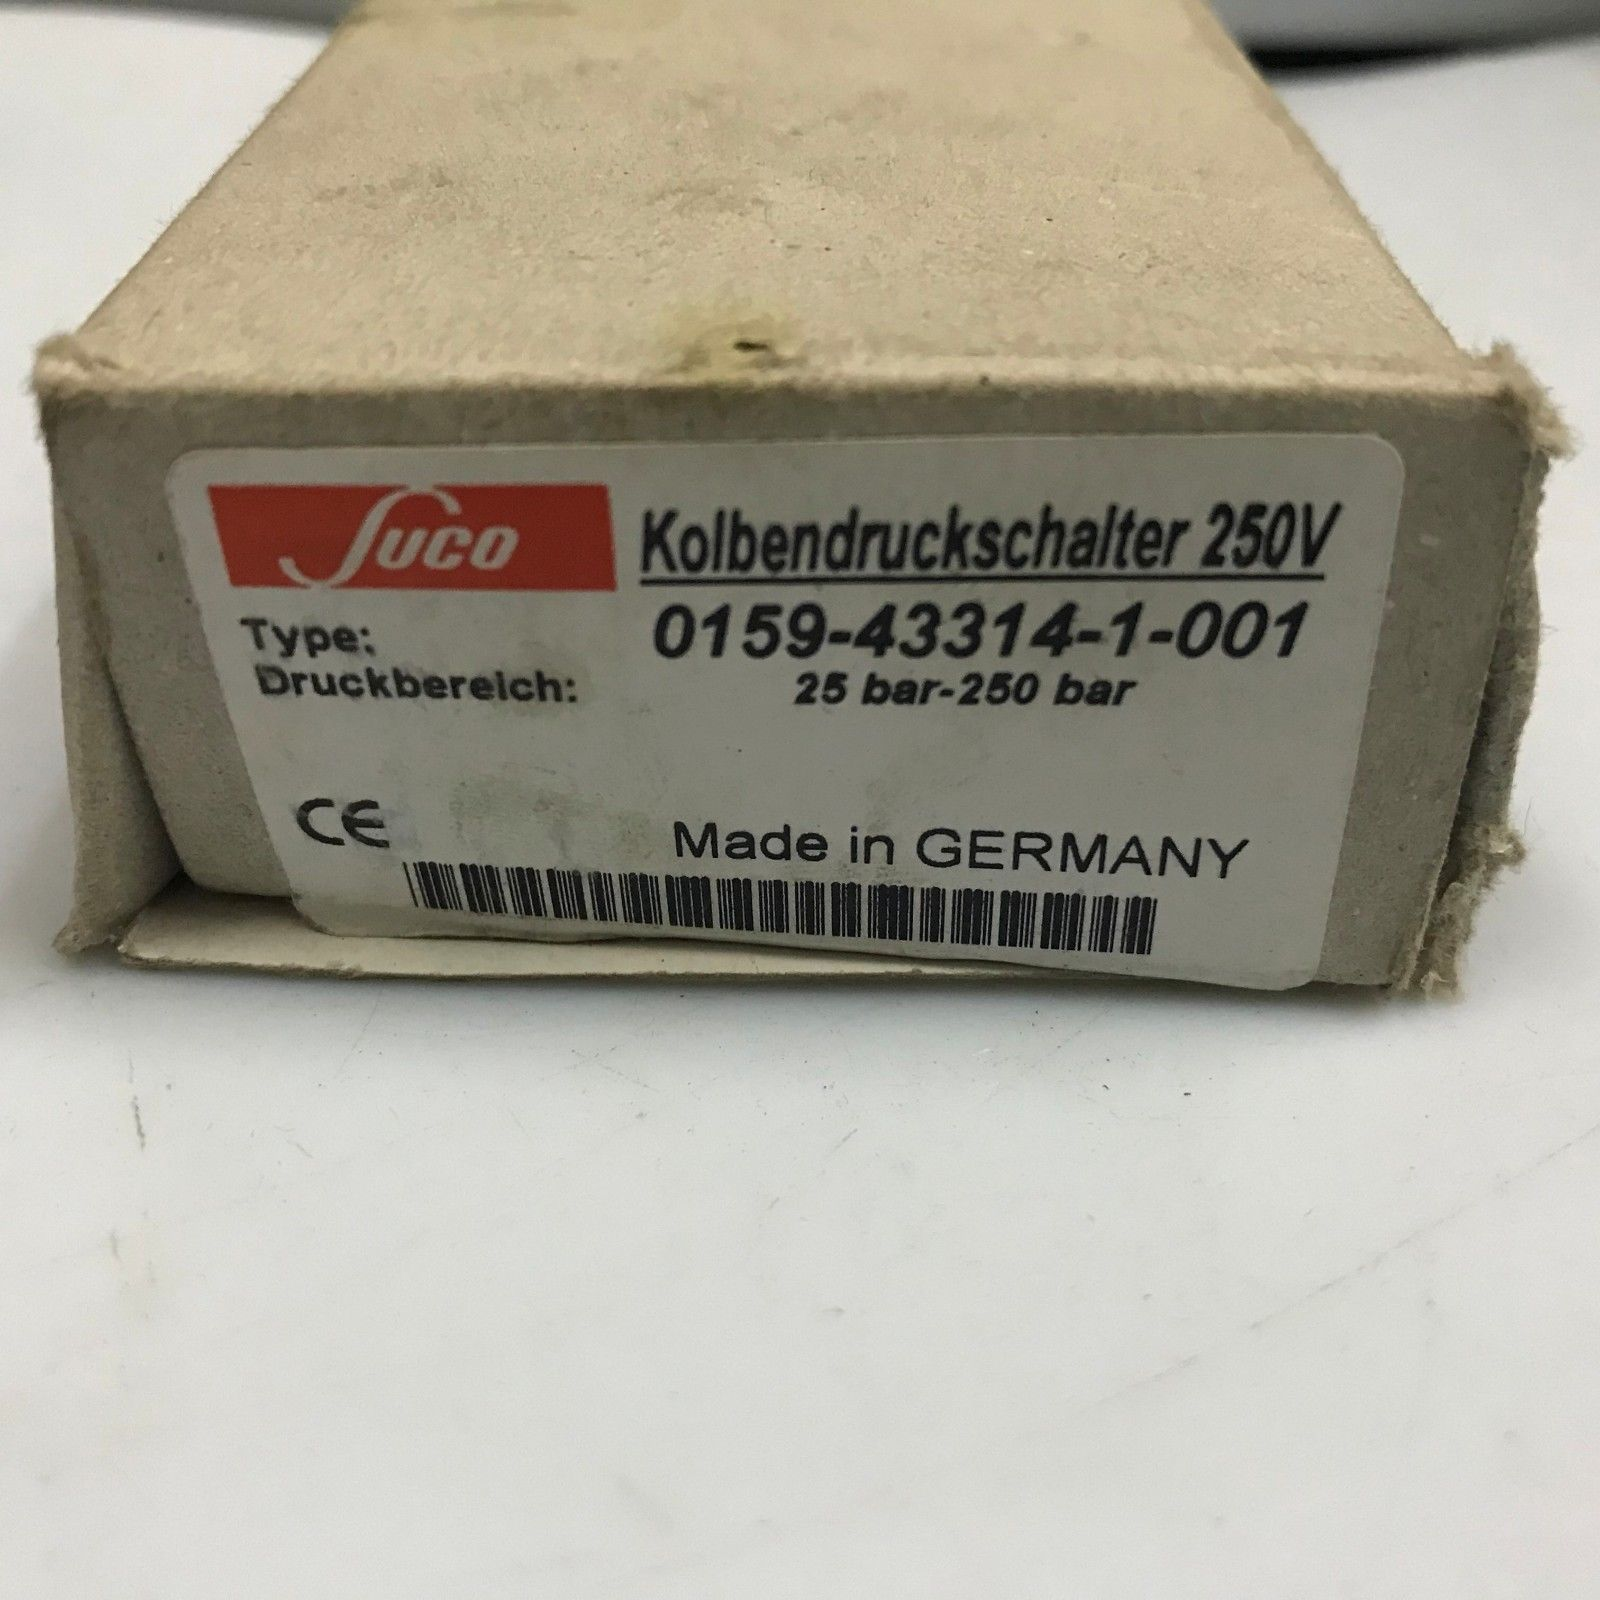 Suco Pressure Switch 25 250 Bar G1 4 0159 43314 1 001 Ebay Link Bar Container